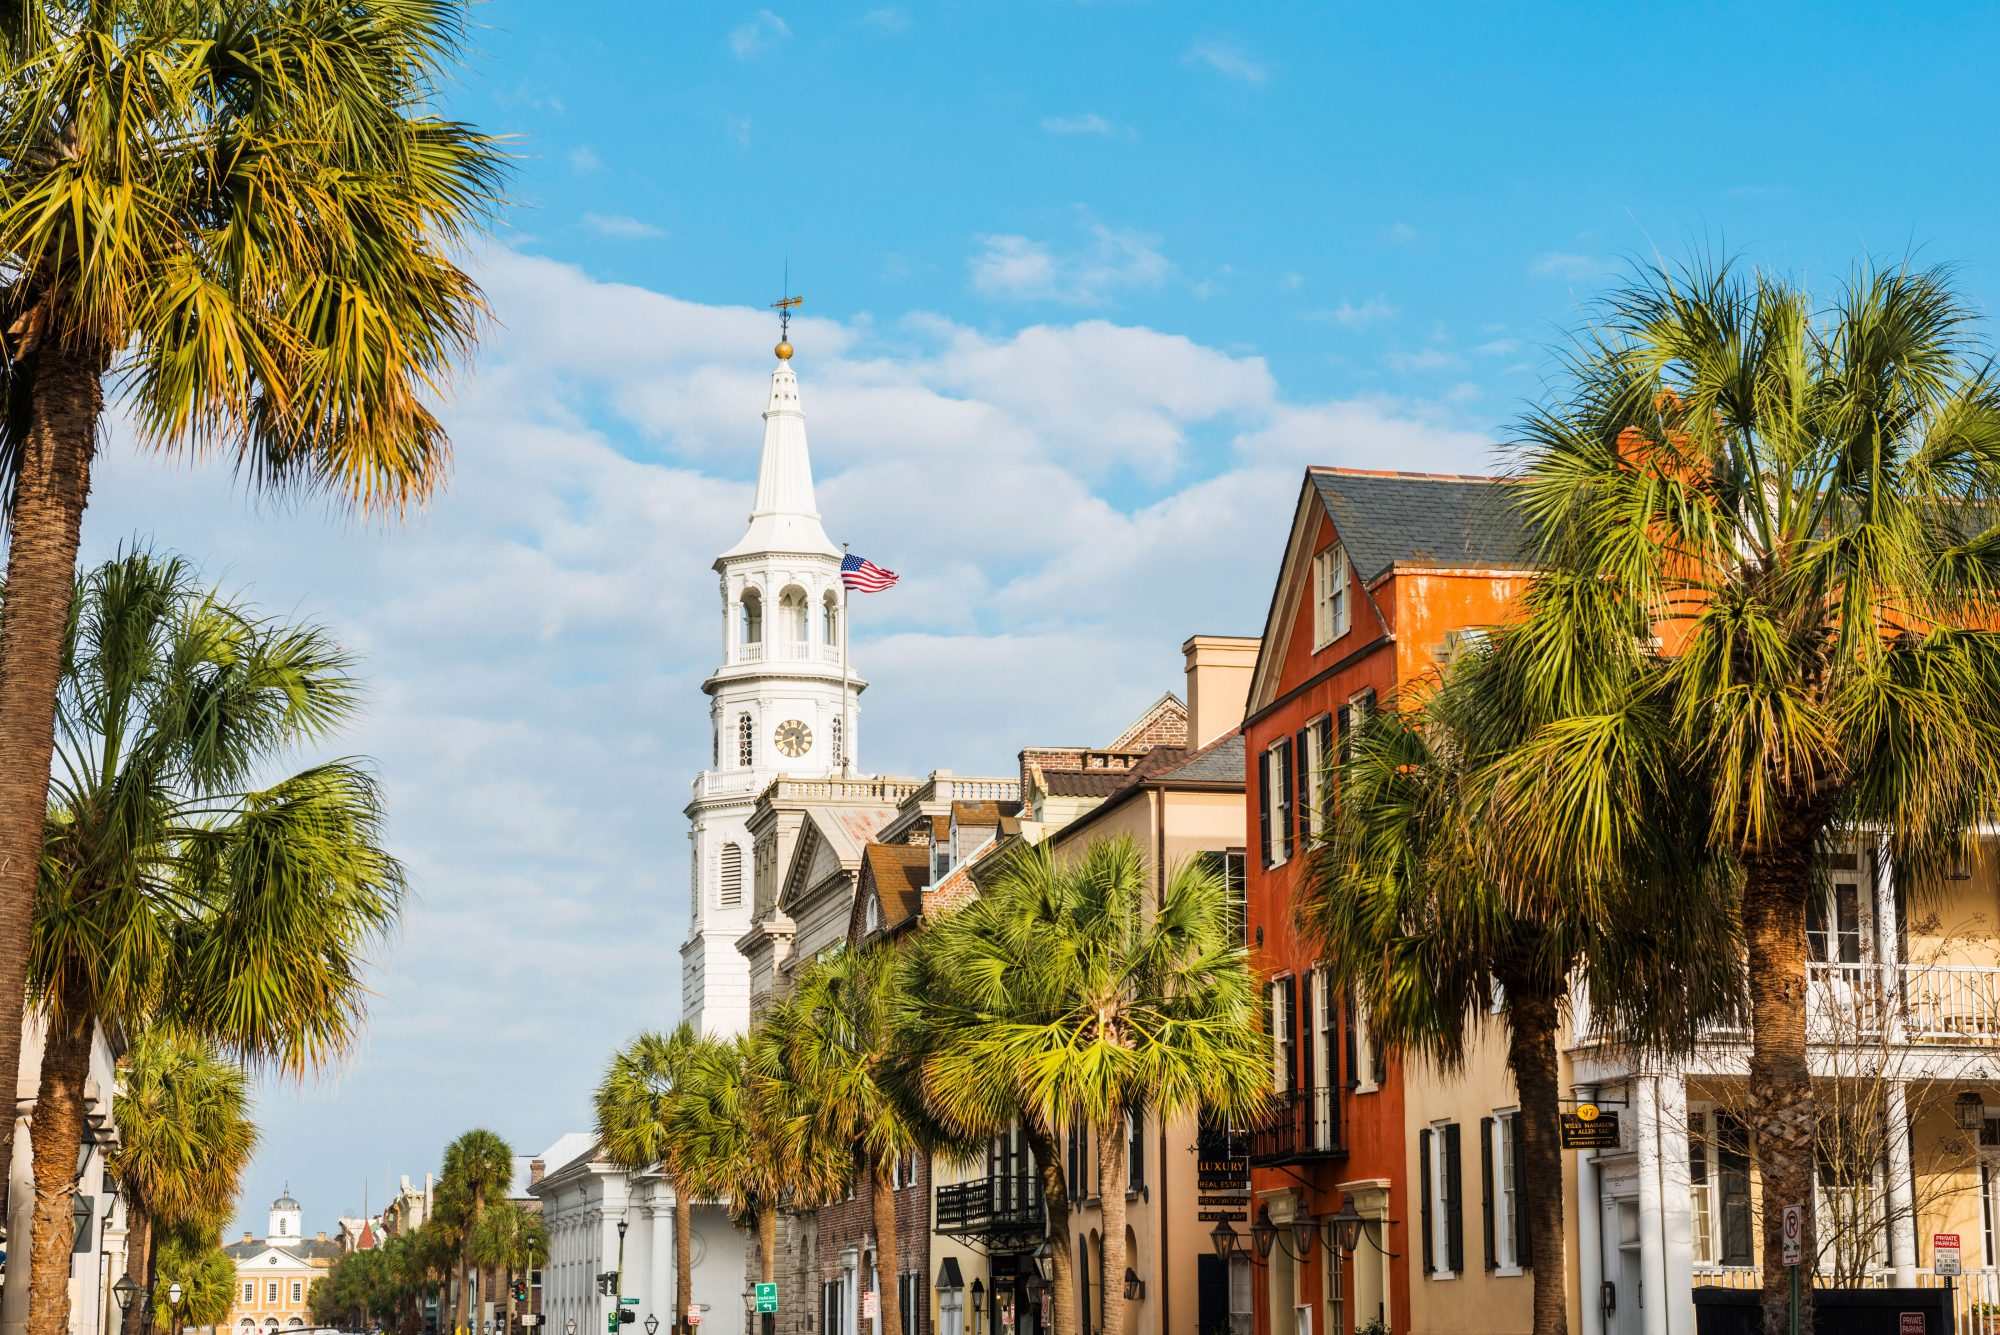 Charleston, South Carolina- The Holy City